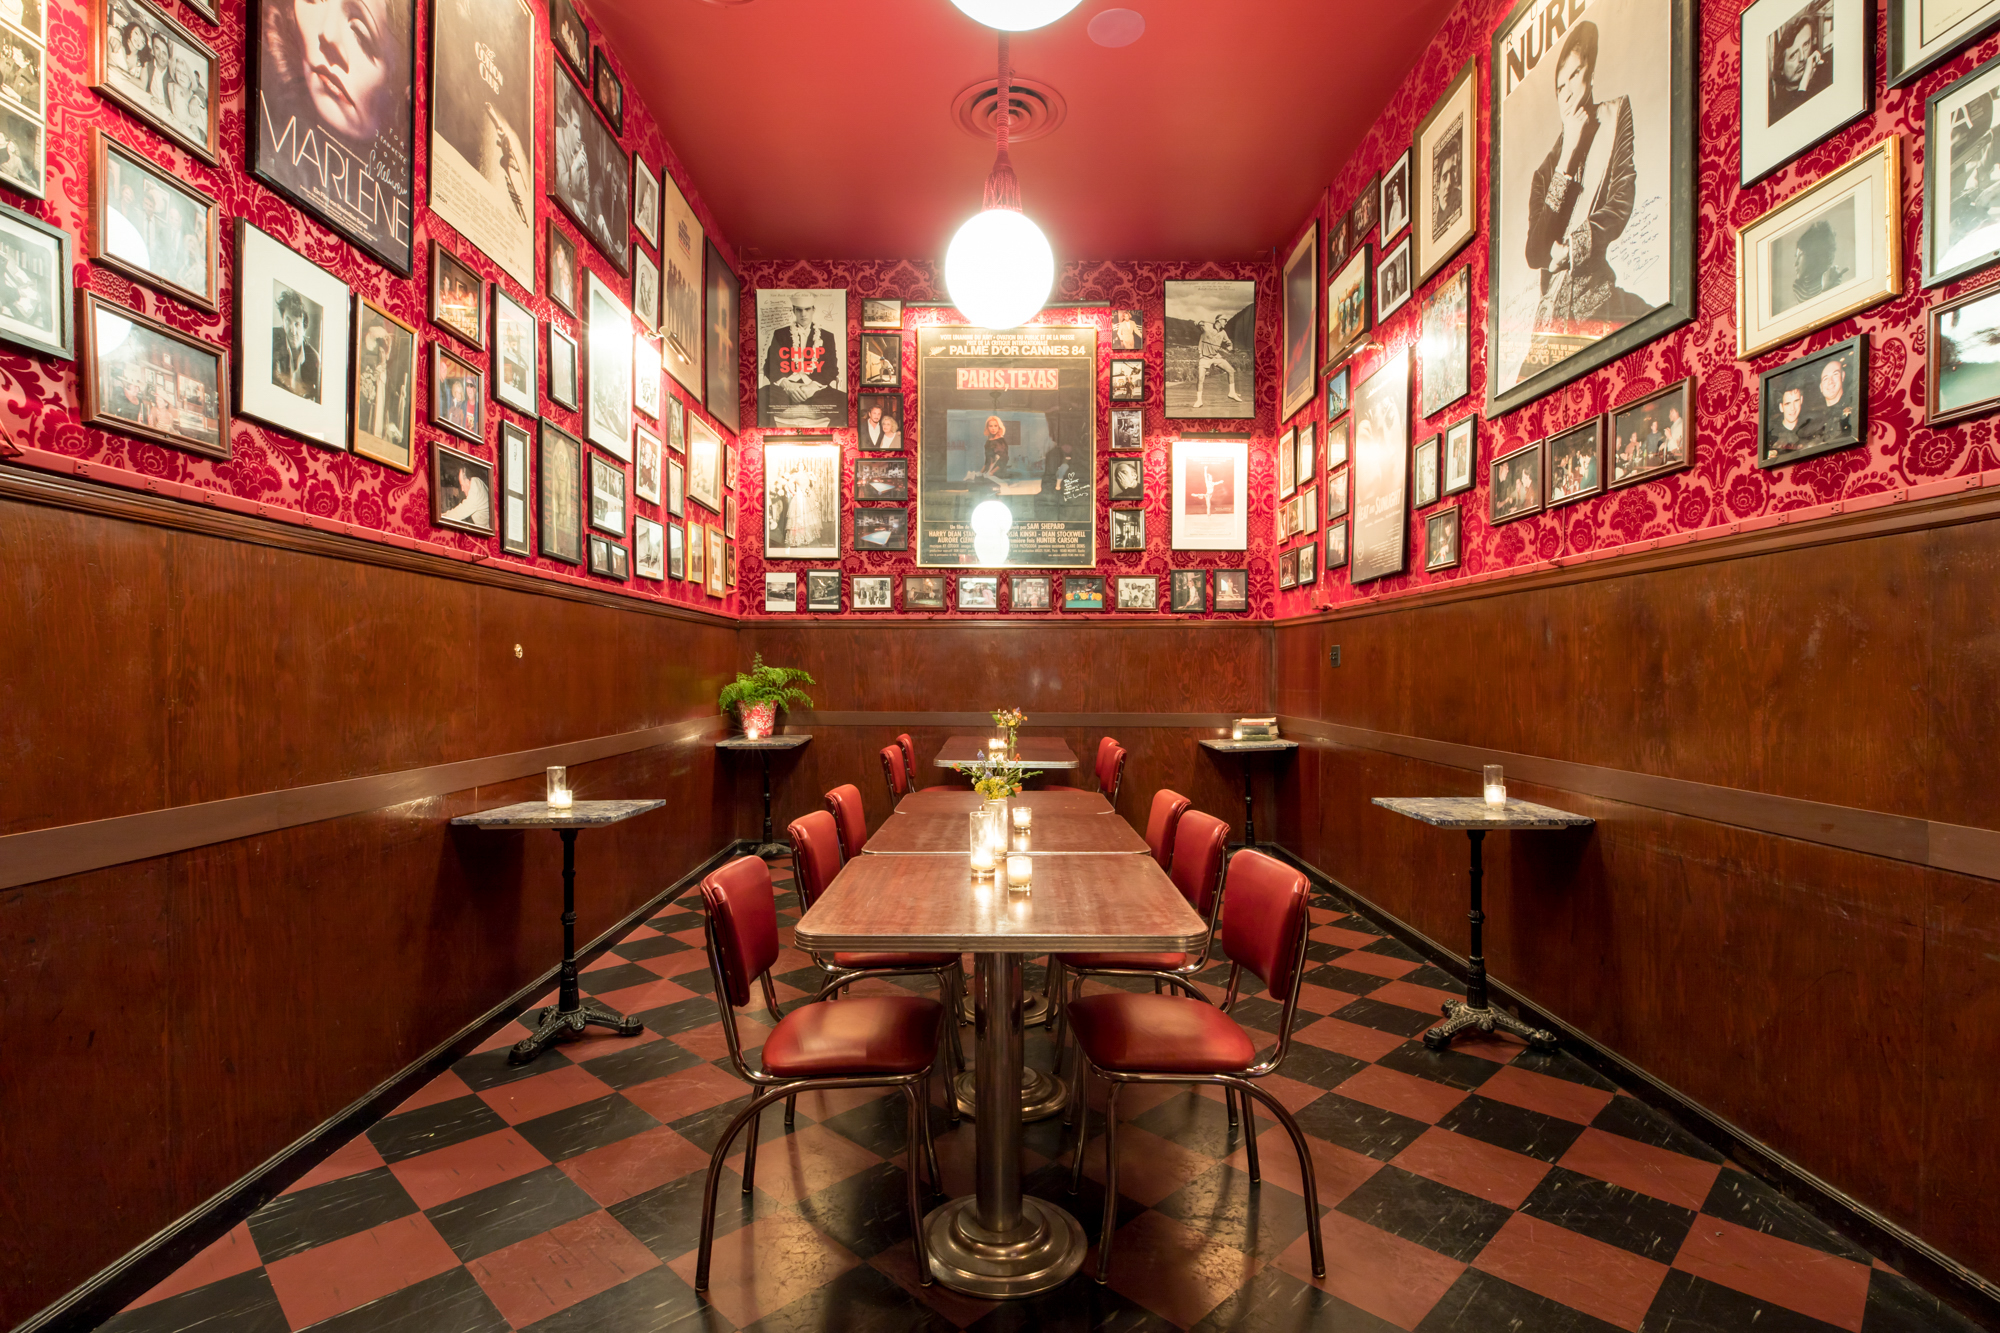 The interior of Tosca Cafe with red-and-black floors and art hanging on the walls above a wooden table